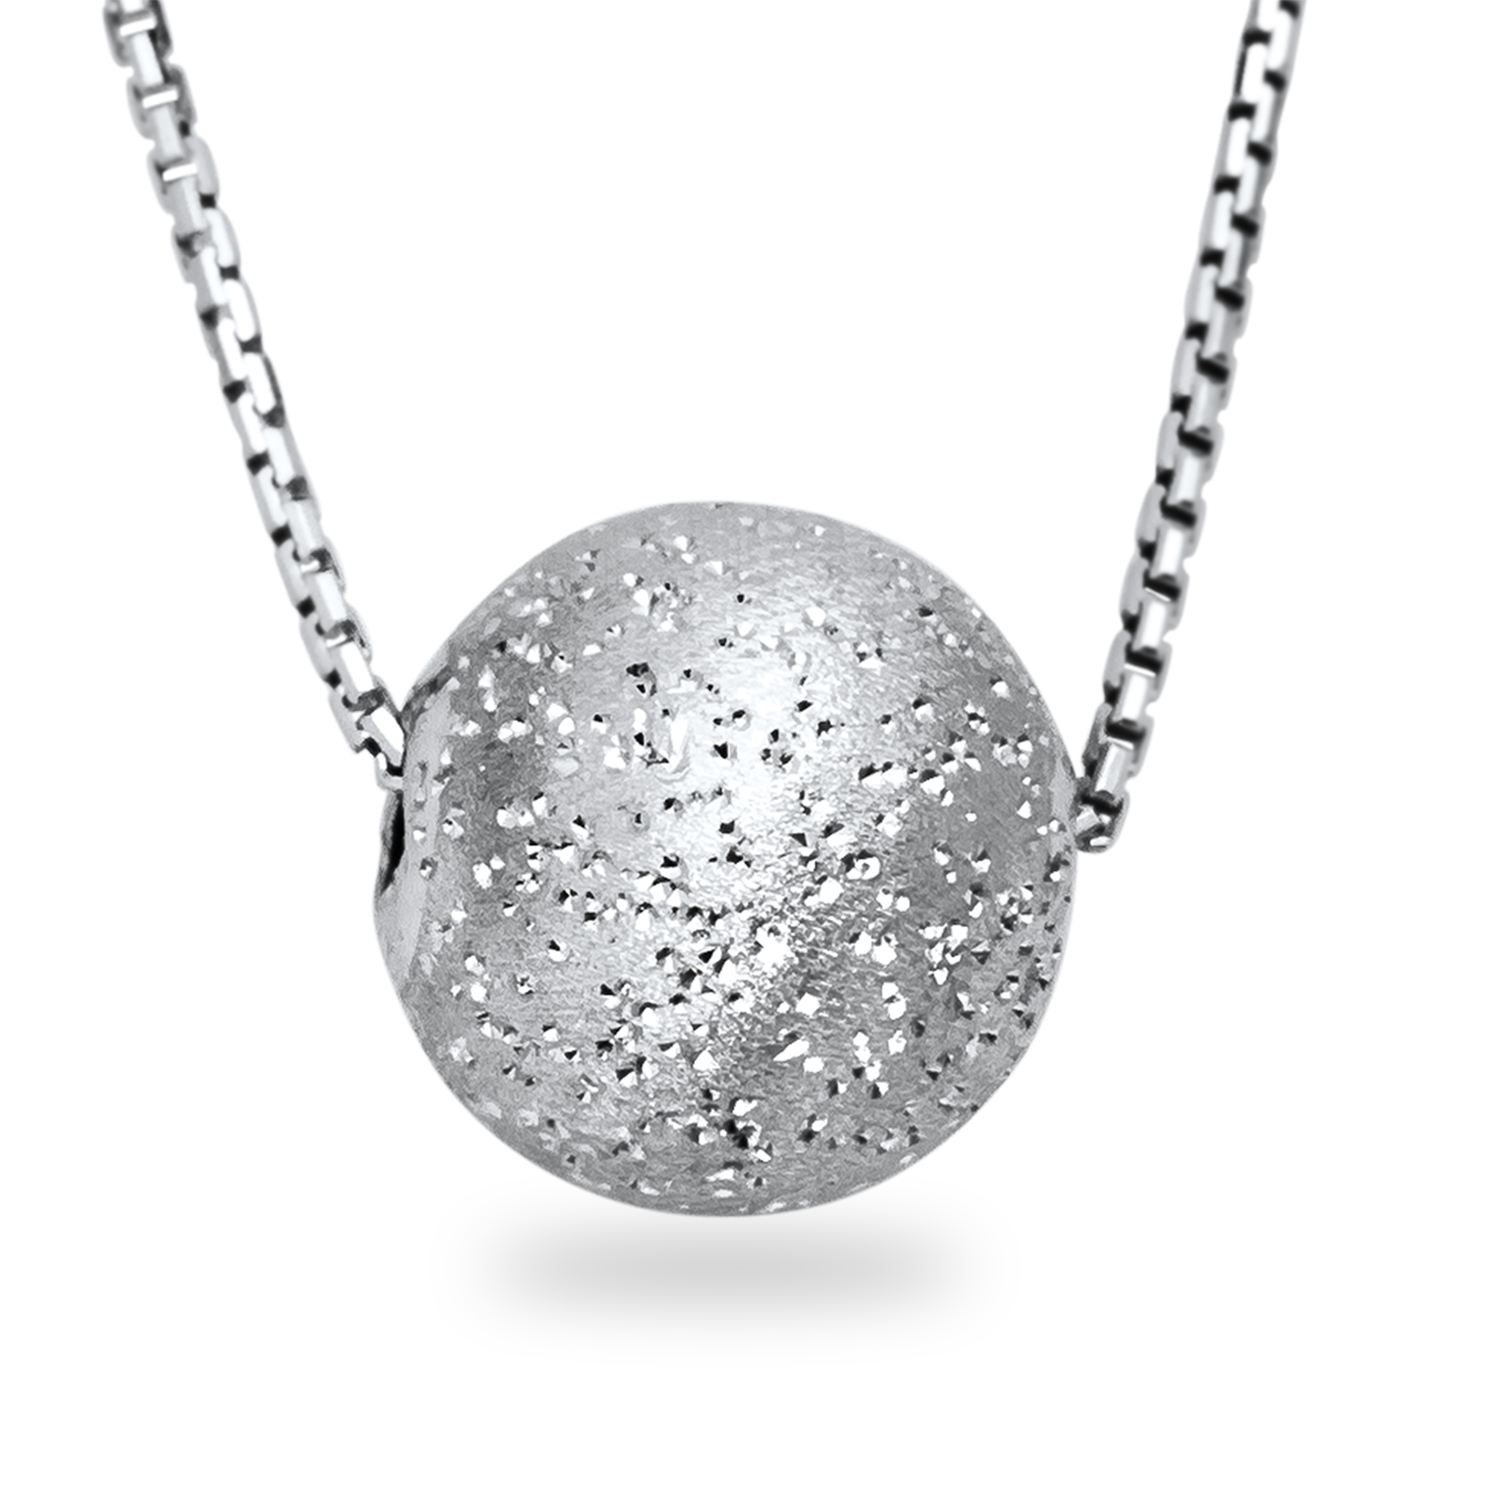 "Rhodium Plated Sterling Silver 18"" Necklace w/Laser-Cut Pendant"